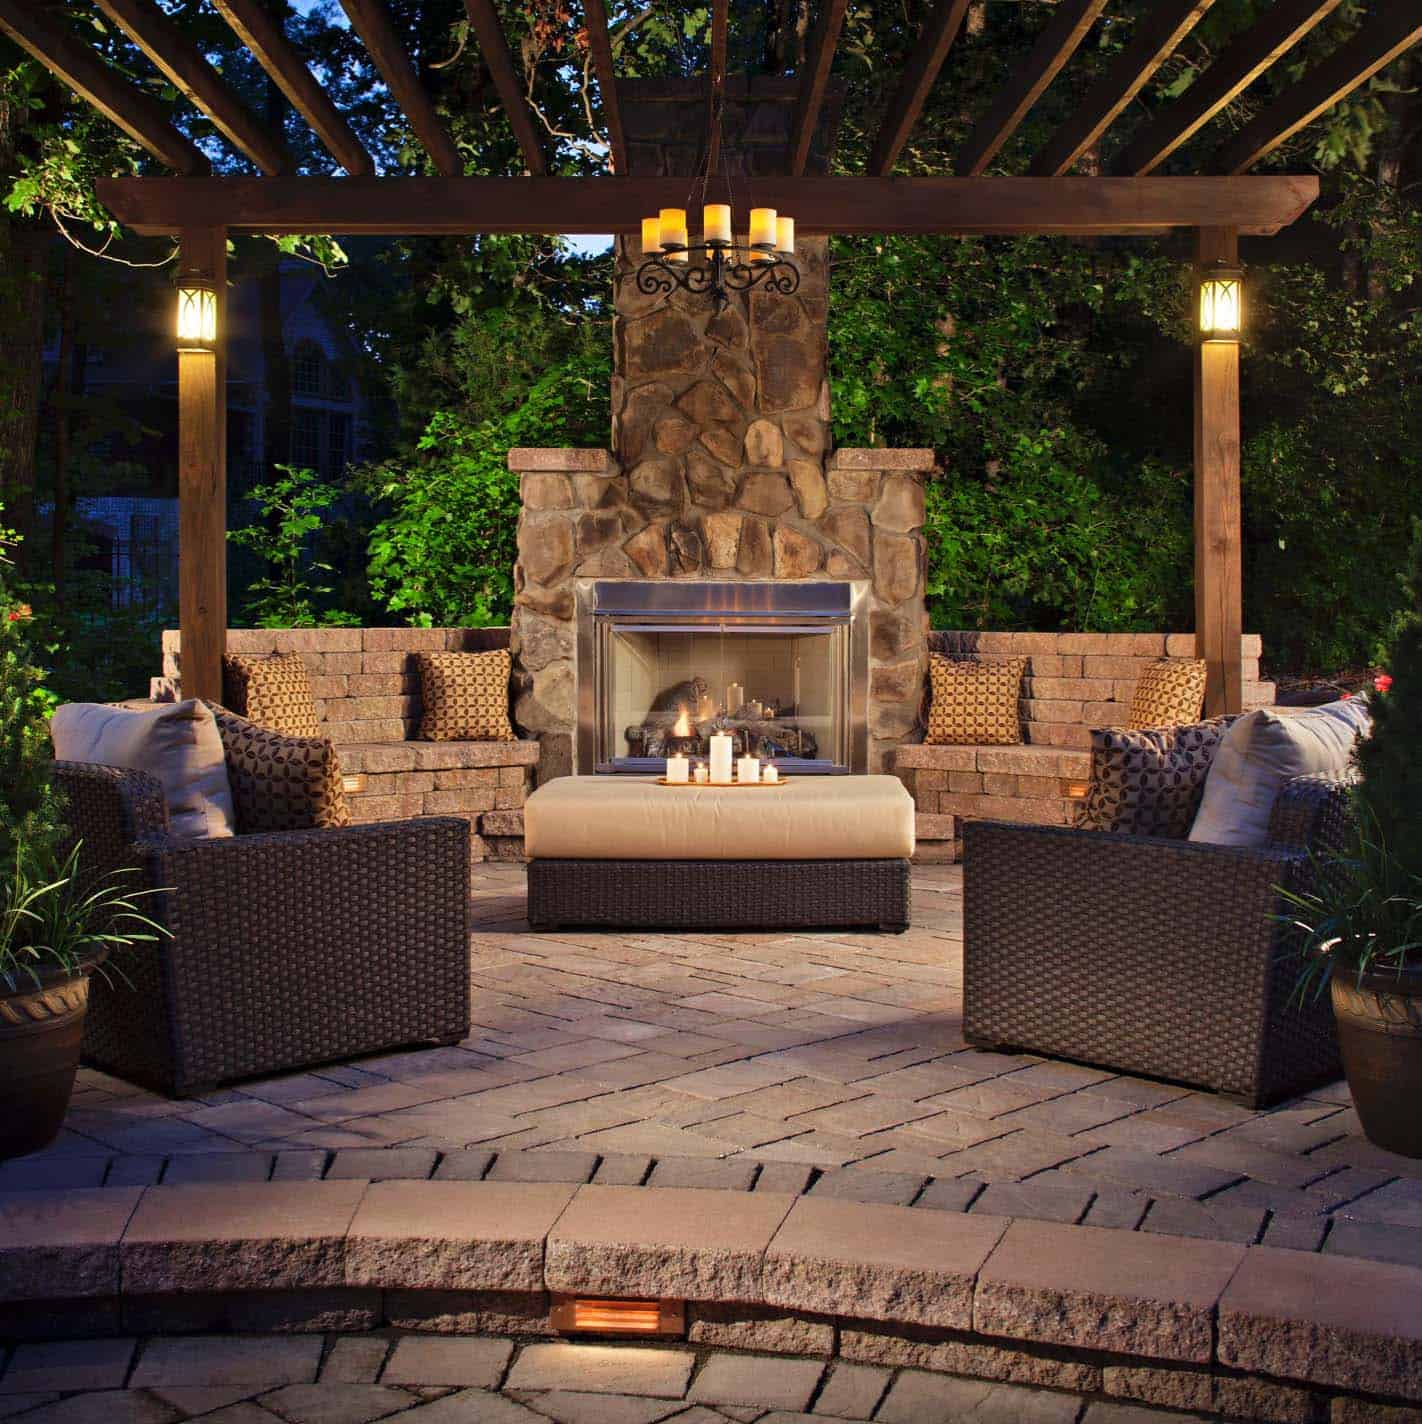 33 Fabulous Ideas For Creating Beautiful Outdoor Living Spaces on Backyard Outdoor Living Spaces id=58946